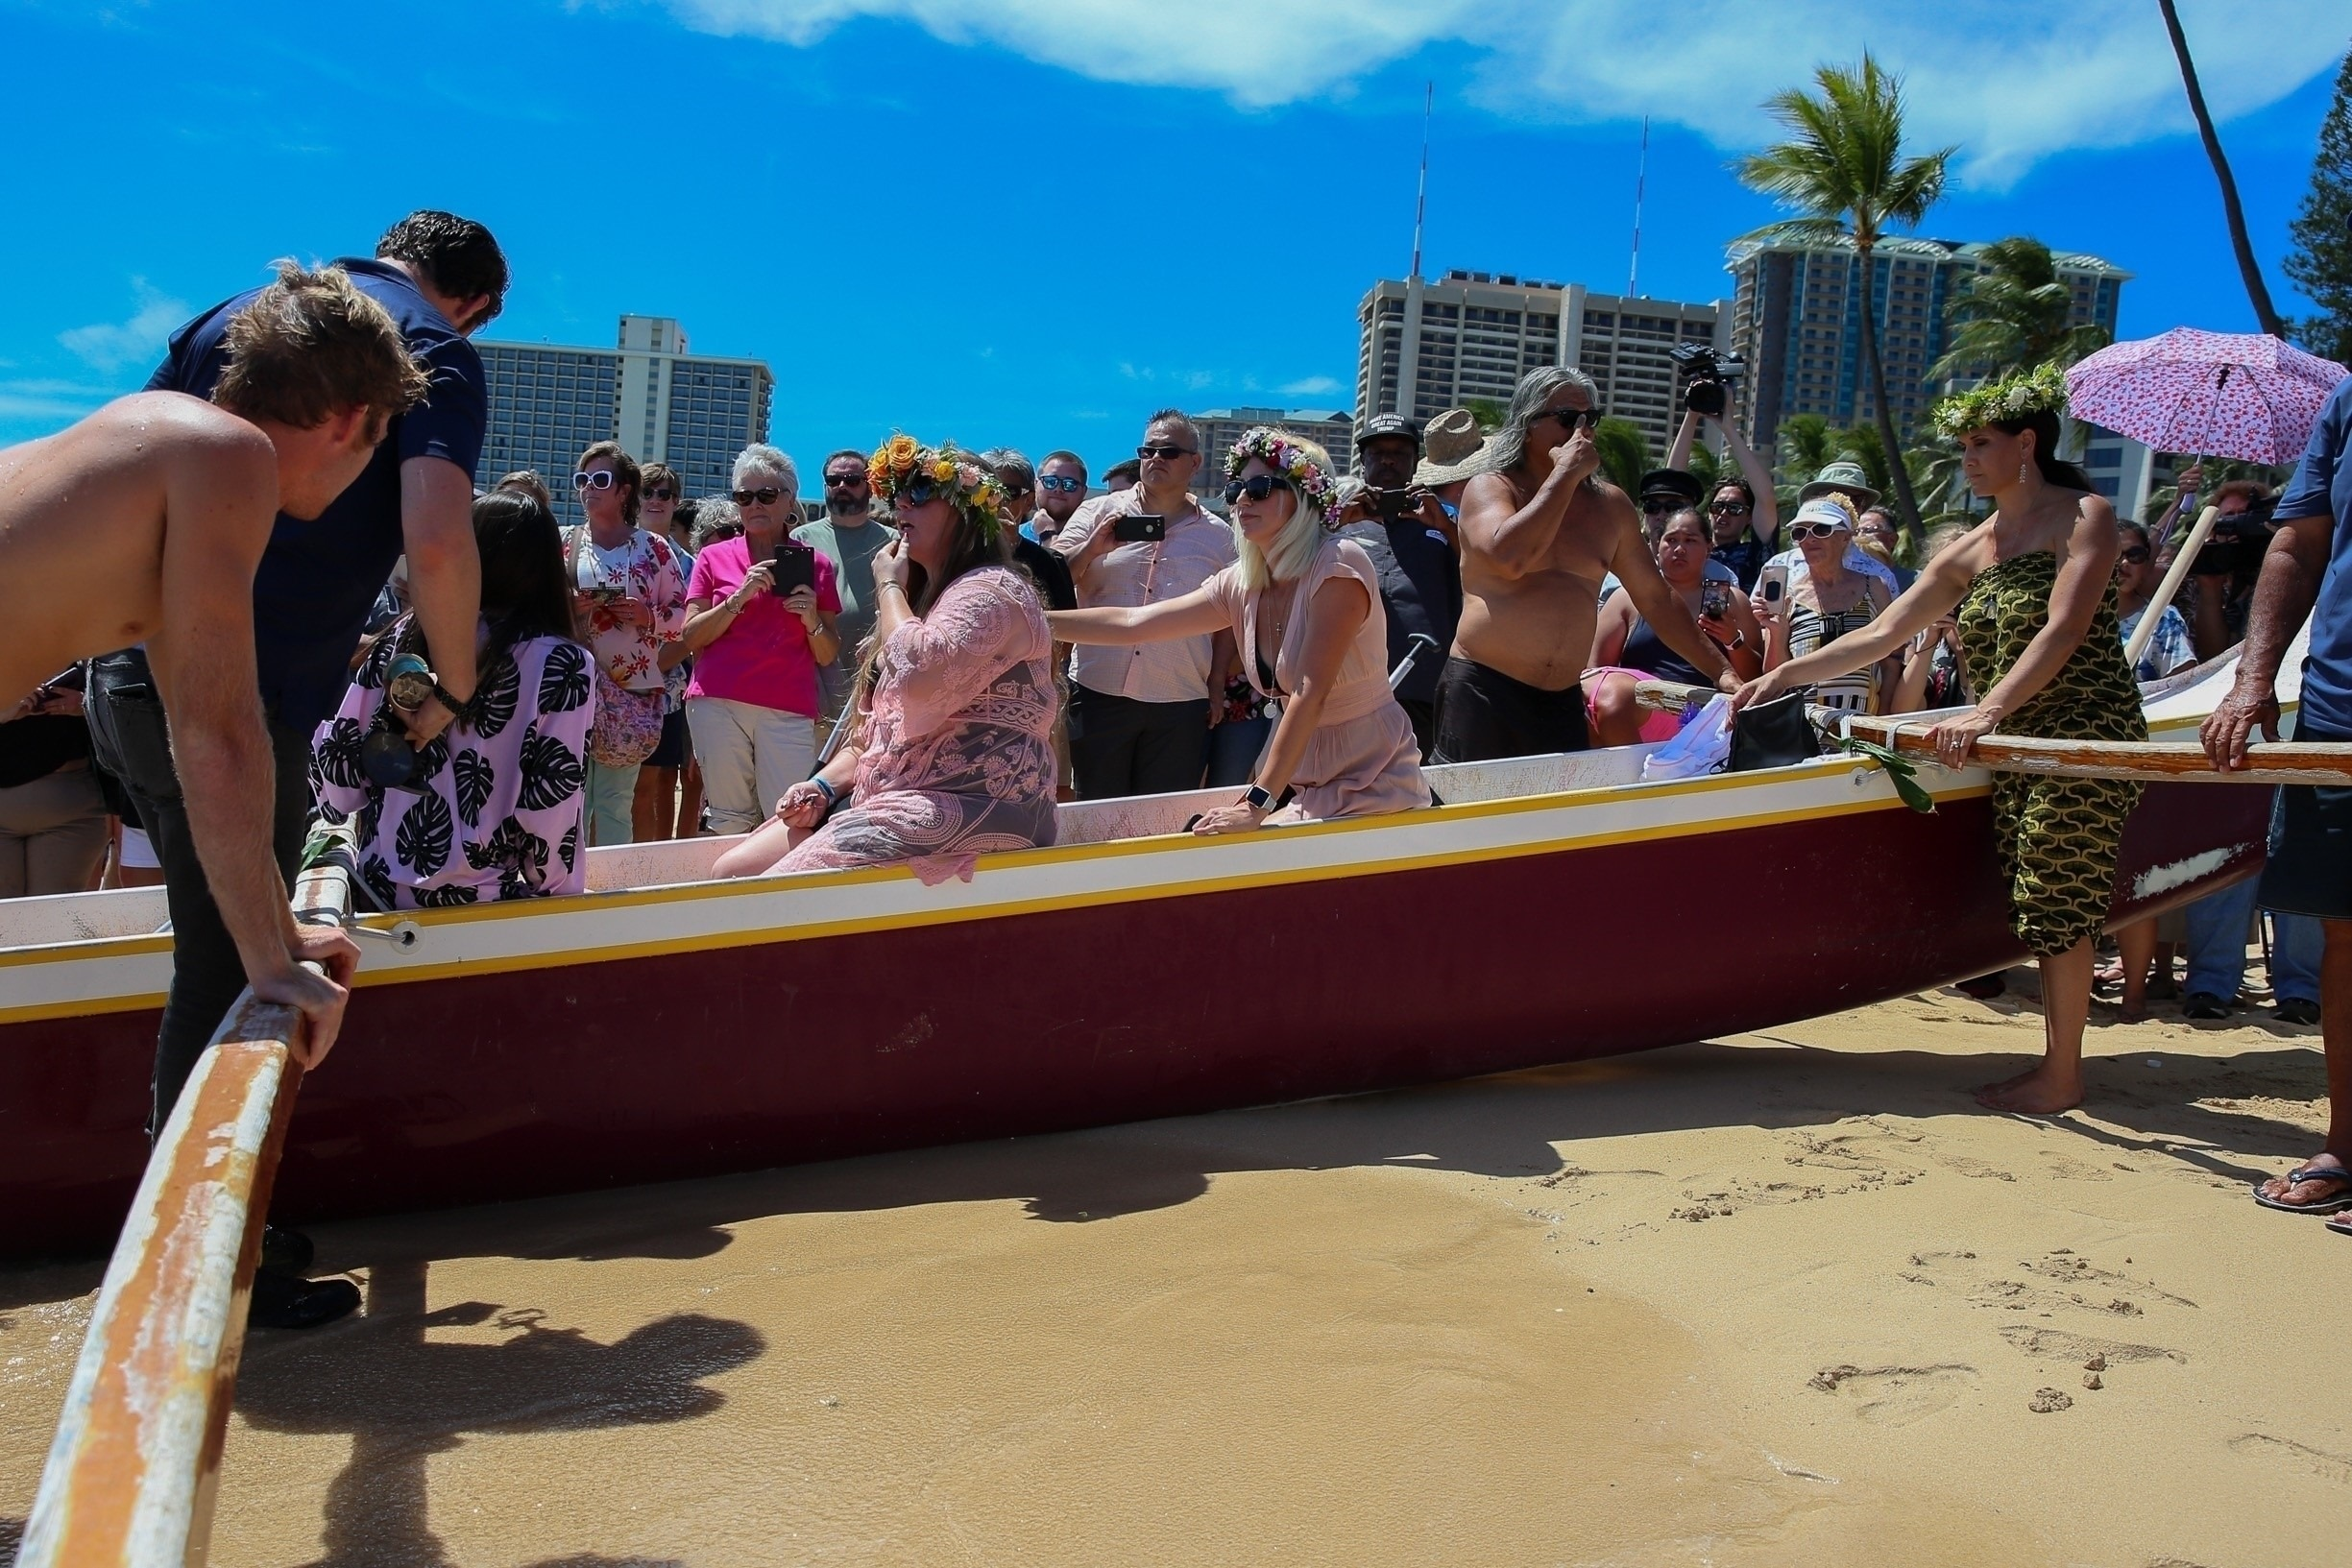 Mourners attended the memorial which was held on a beach in Hawaii. Credit: BACKGRID